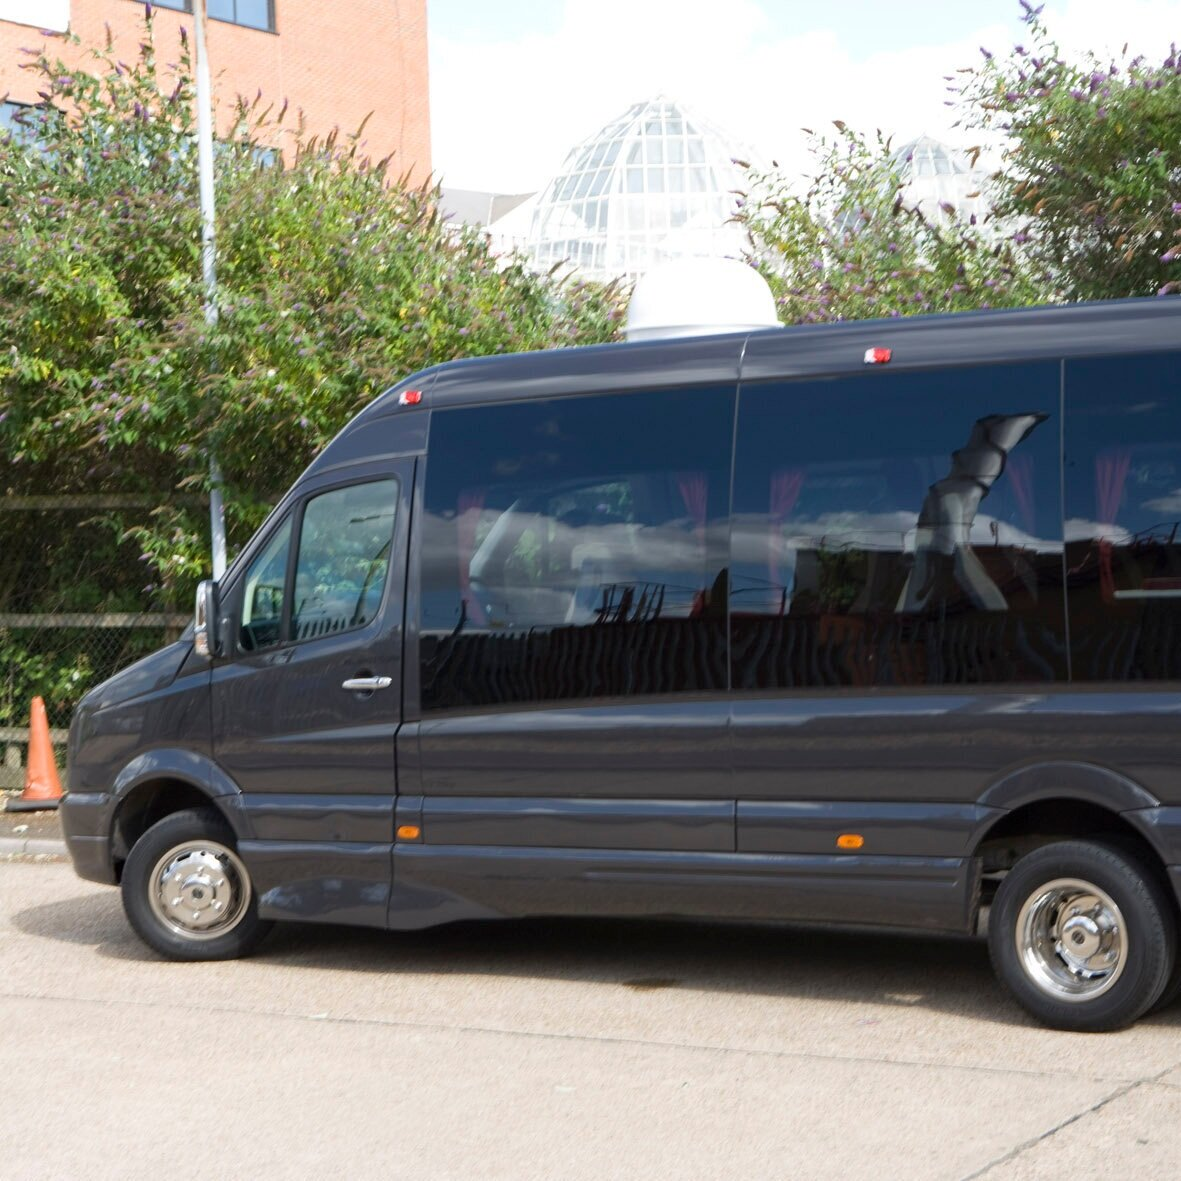 VIP MINIBUSES/COACHES - We provide superior executive chauffeur services specially designed for executive group travel.Our coaches are designed for the needs of the most discerning travellers, equipped to the highest standard, each with reclining leather seats, walnut conference tables, huge luggage capacity, air-conditioning, TV and DVD Media Systems, personal audio, climate control and lighting, 240v and 12v electrical charging points, Integrated Bluetooth communications system and on board satellite navigation, GPRS vehicle tracking to ensure maximum reliability and punctuality; and even an onboard refrigerator to keep your drinks ice cool.With an International PSV operators Licence we can cater for any event or transfer, from an individual airport transfer, scenic tour, transfer to a society event, wedding or an as-directed touring throughout Europe.There is no finer way to travel as a group.> Enquiry form > Email bookings@prestigecarsandcouriers.co.uk> Book Online